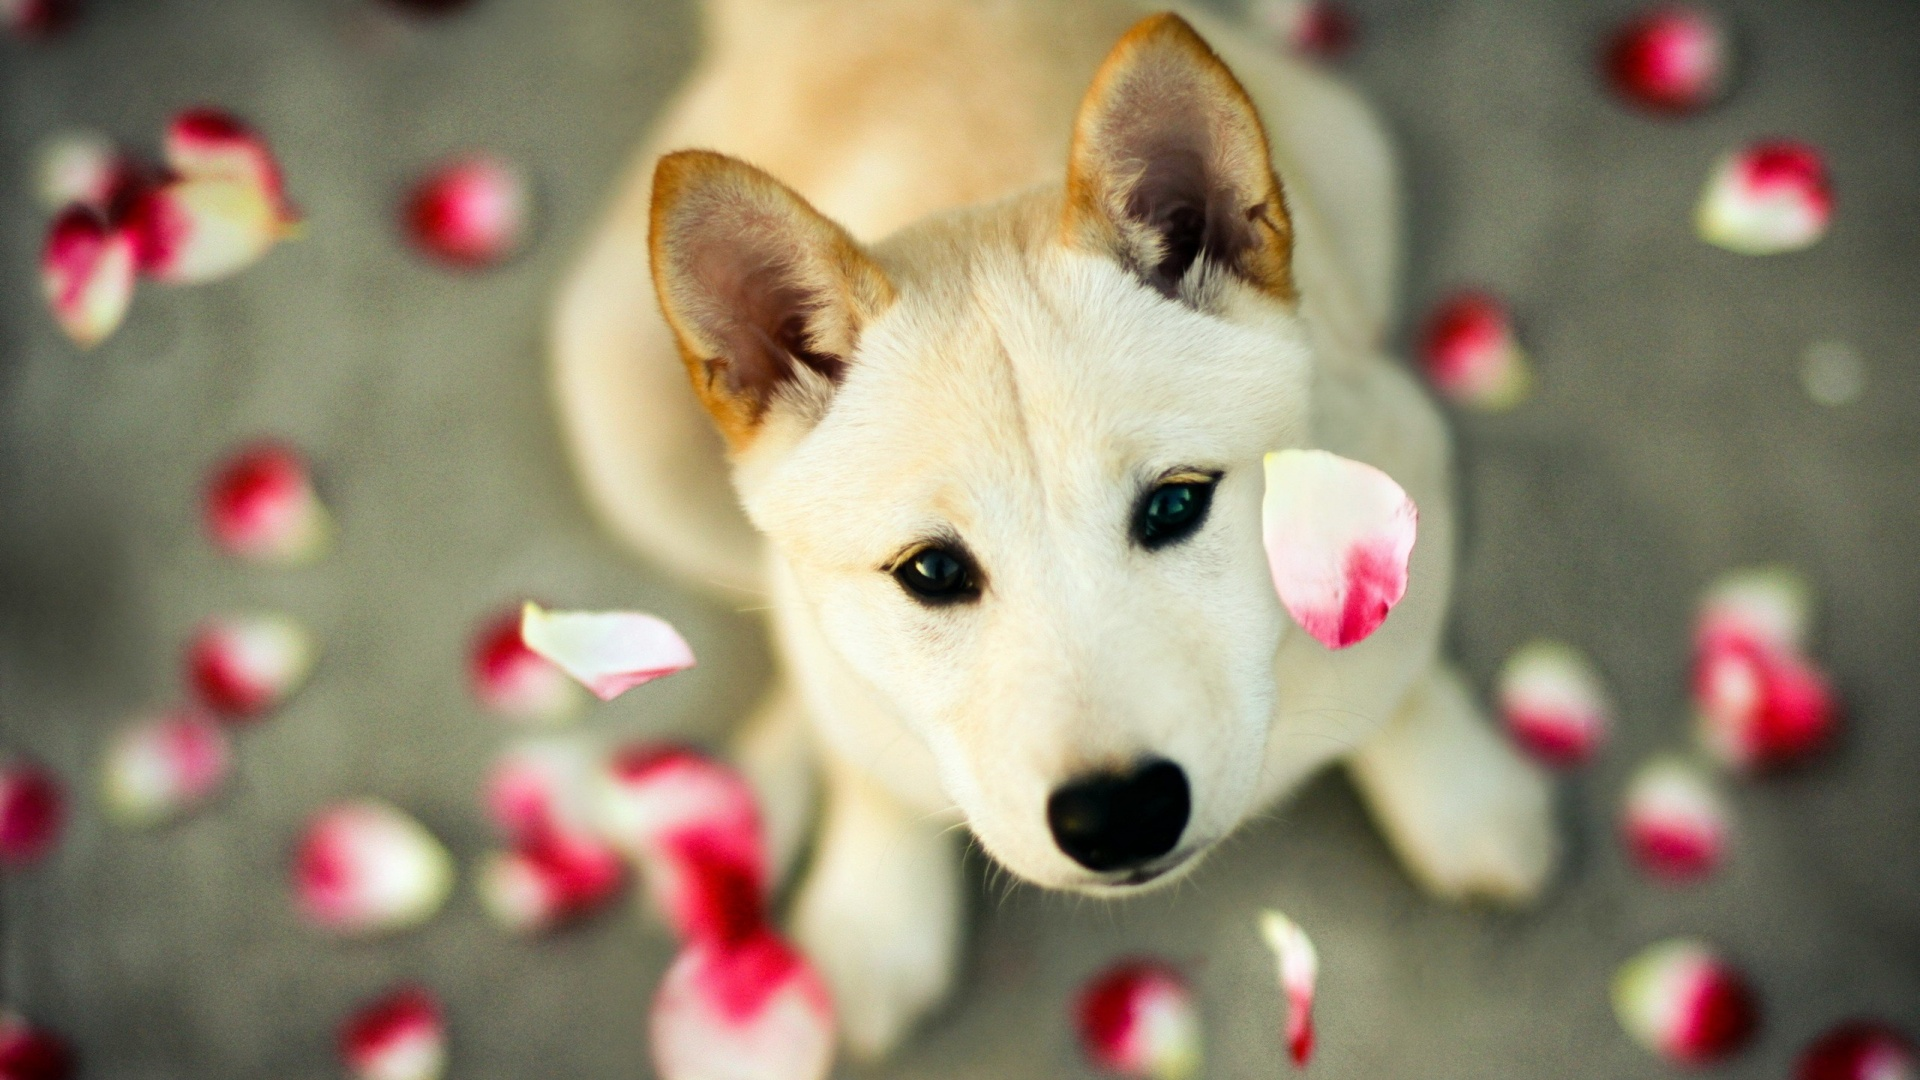 Cute Puppy Wallpaper 6785123 1920x1080